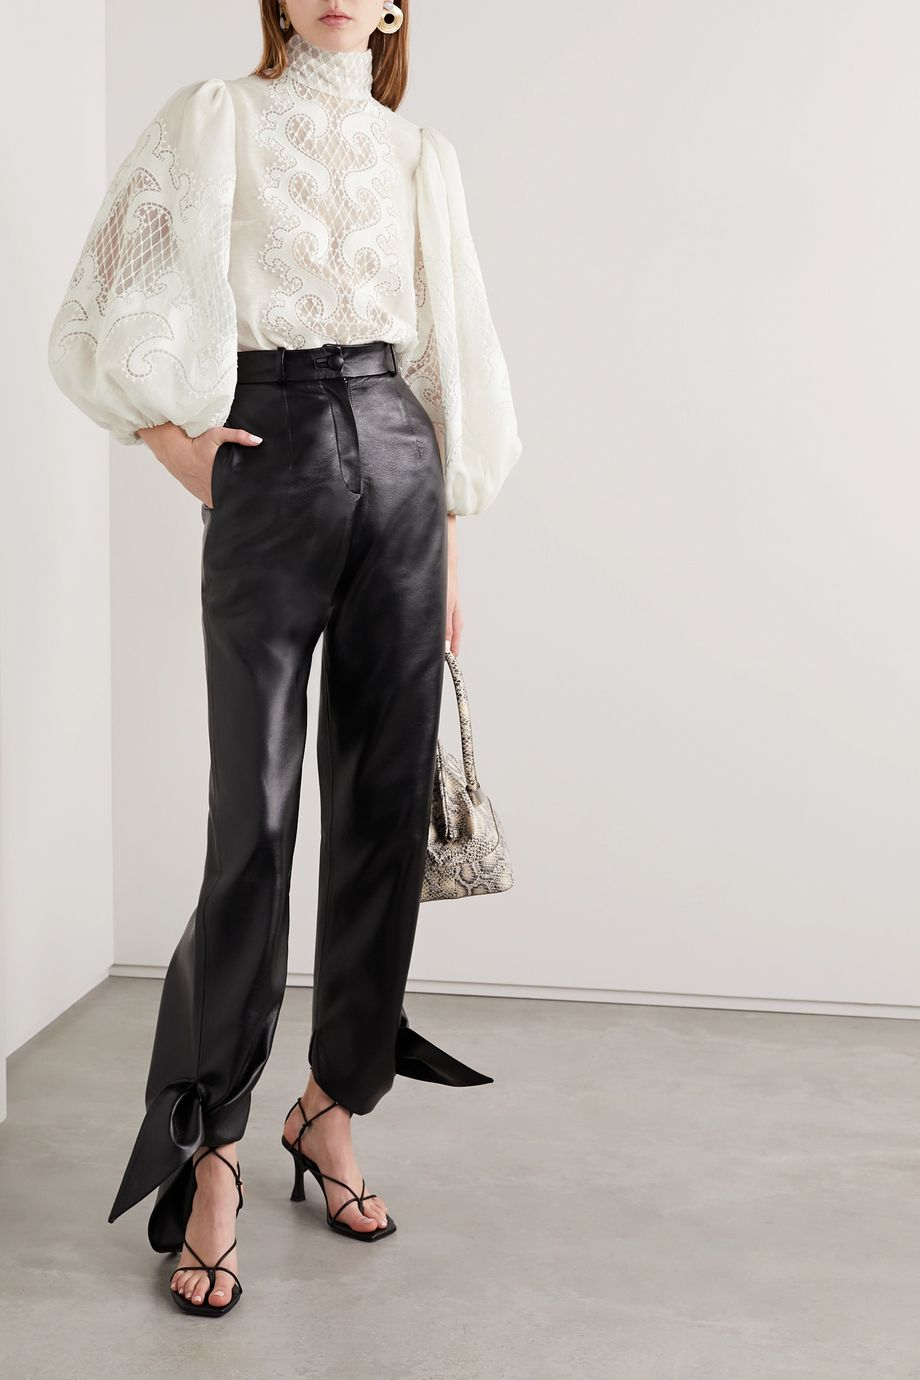 Zimmermann Brightside appliquéd embroidered linen and silk-blend tulle blouse